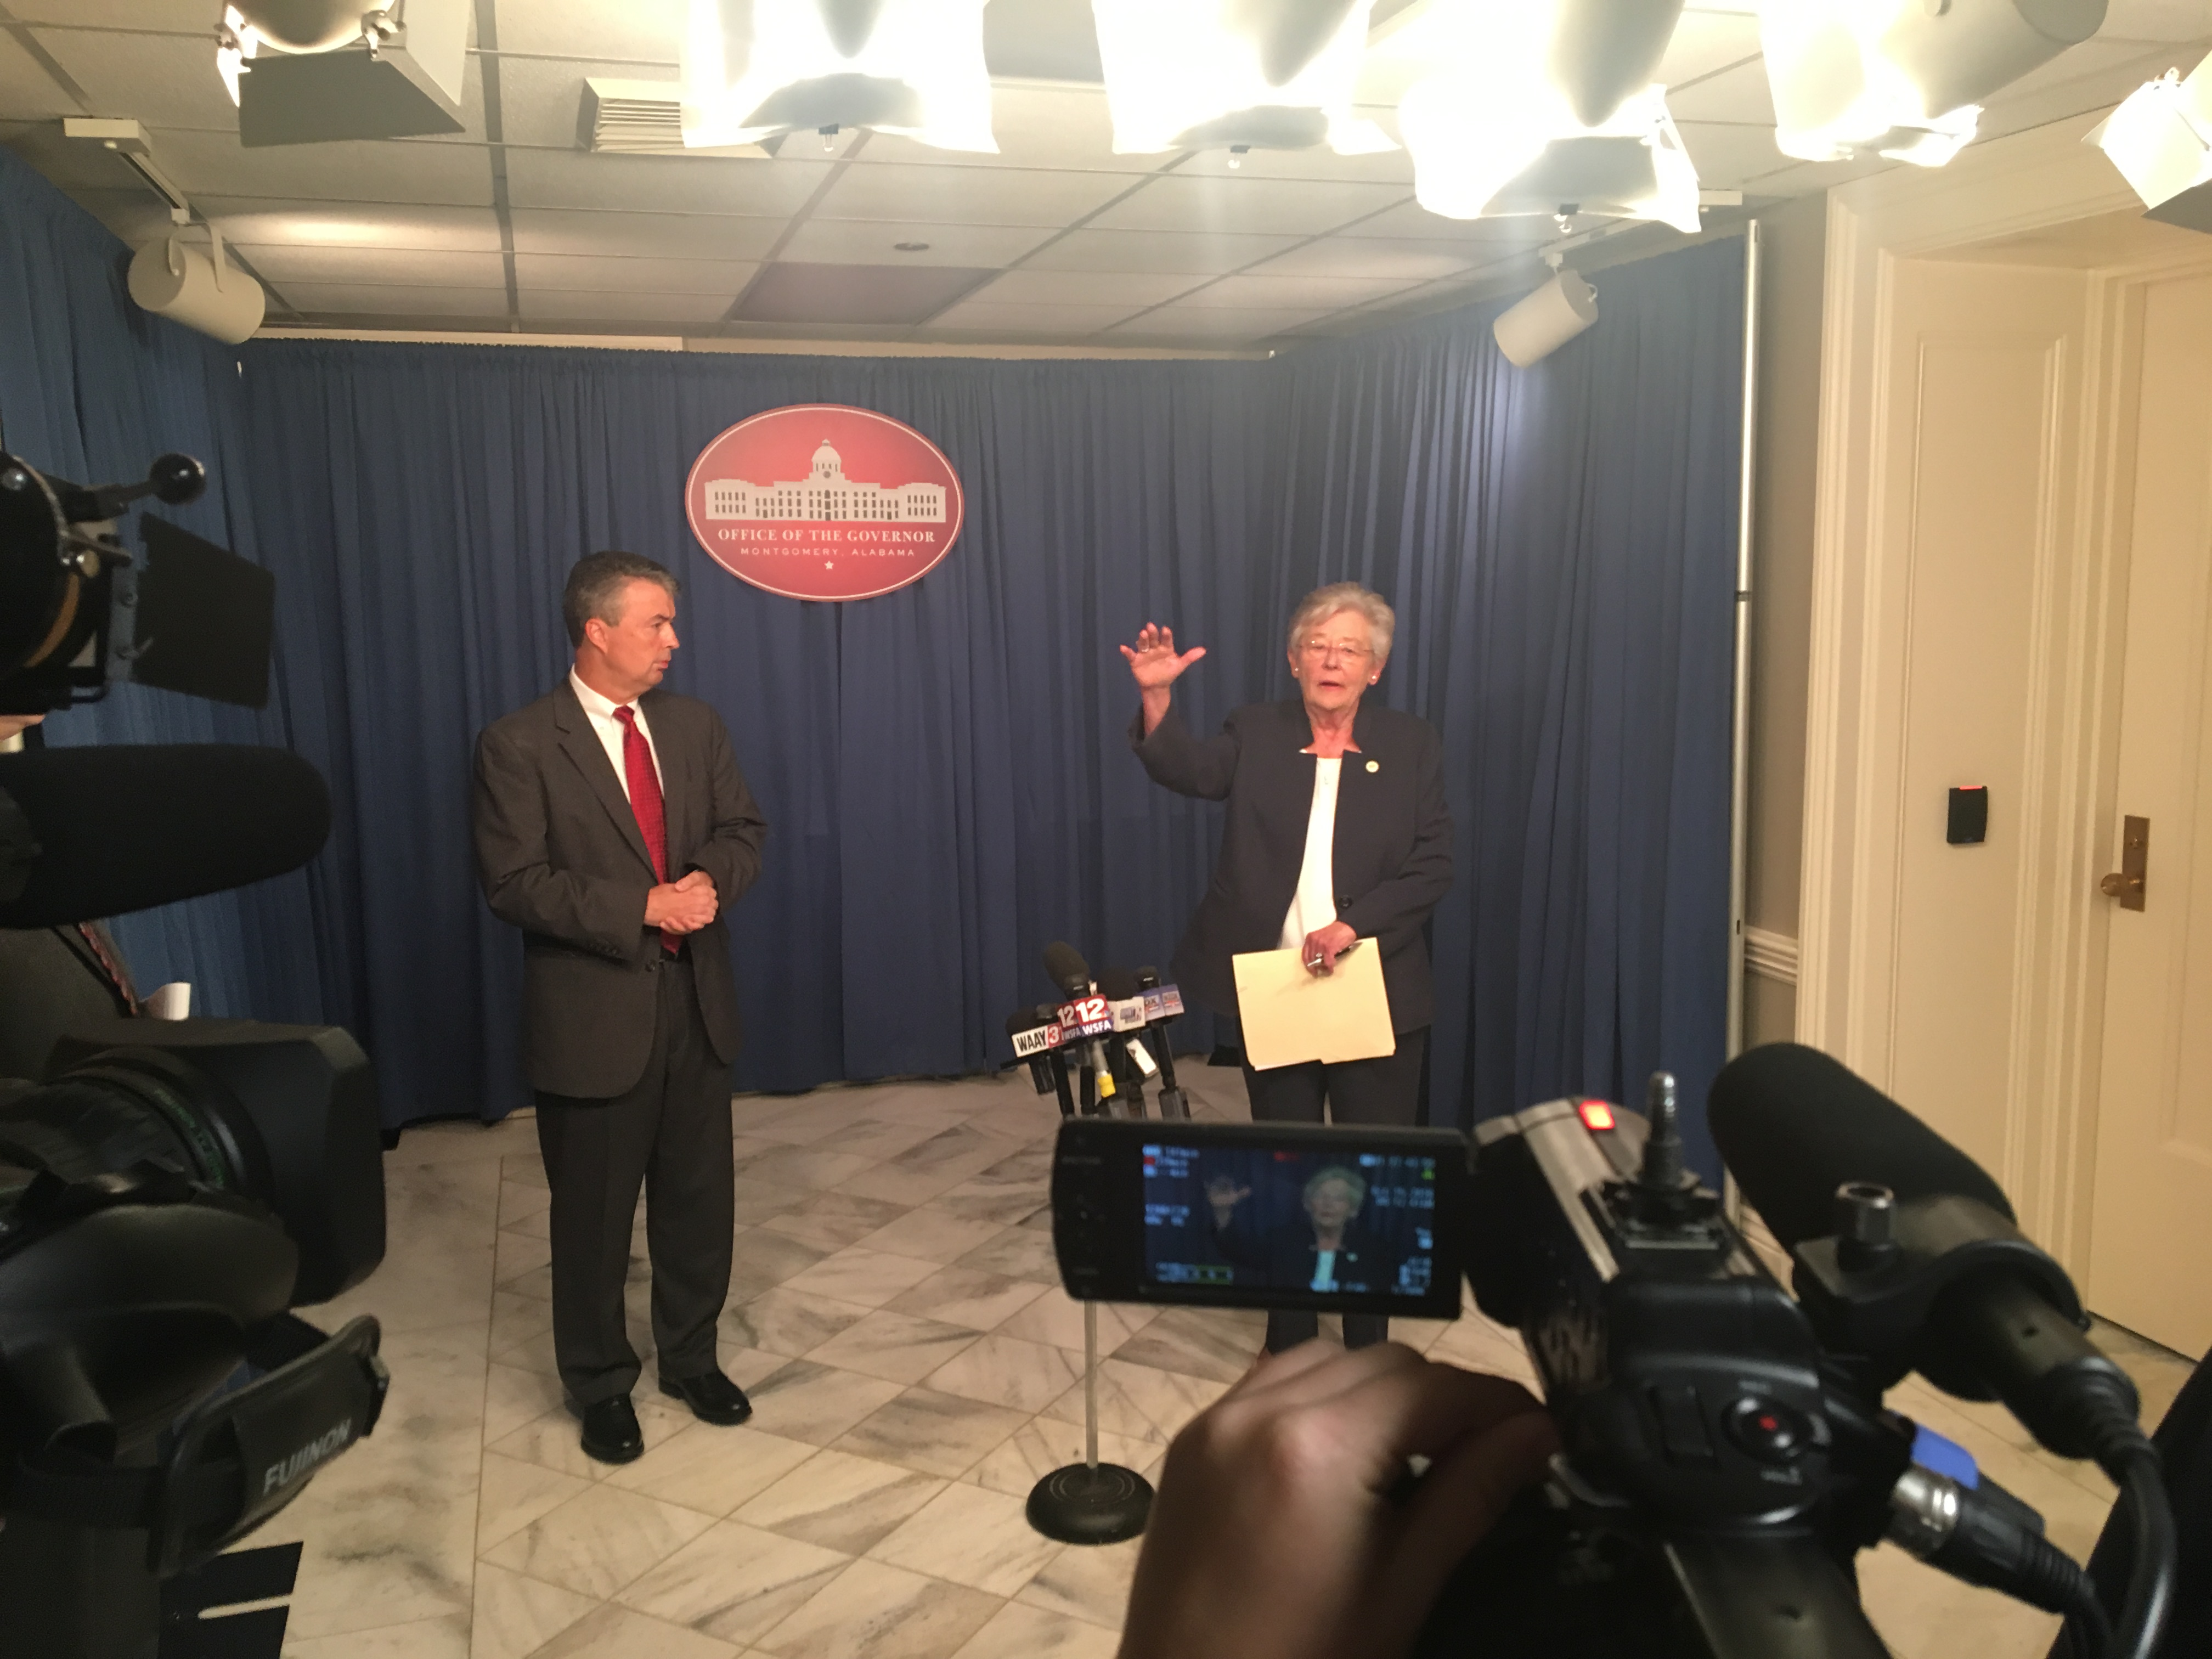 Gov. Kay Ivey and Attorney General Steve Marshall hold a press conference after meeting with the Alabama Board of Pardons and Paroles on Oct. 15, 2018. Ivey issued a moratorium on early paroles.